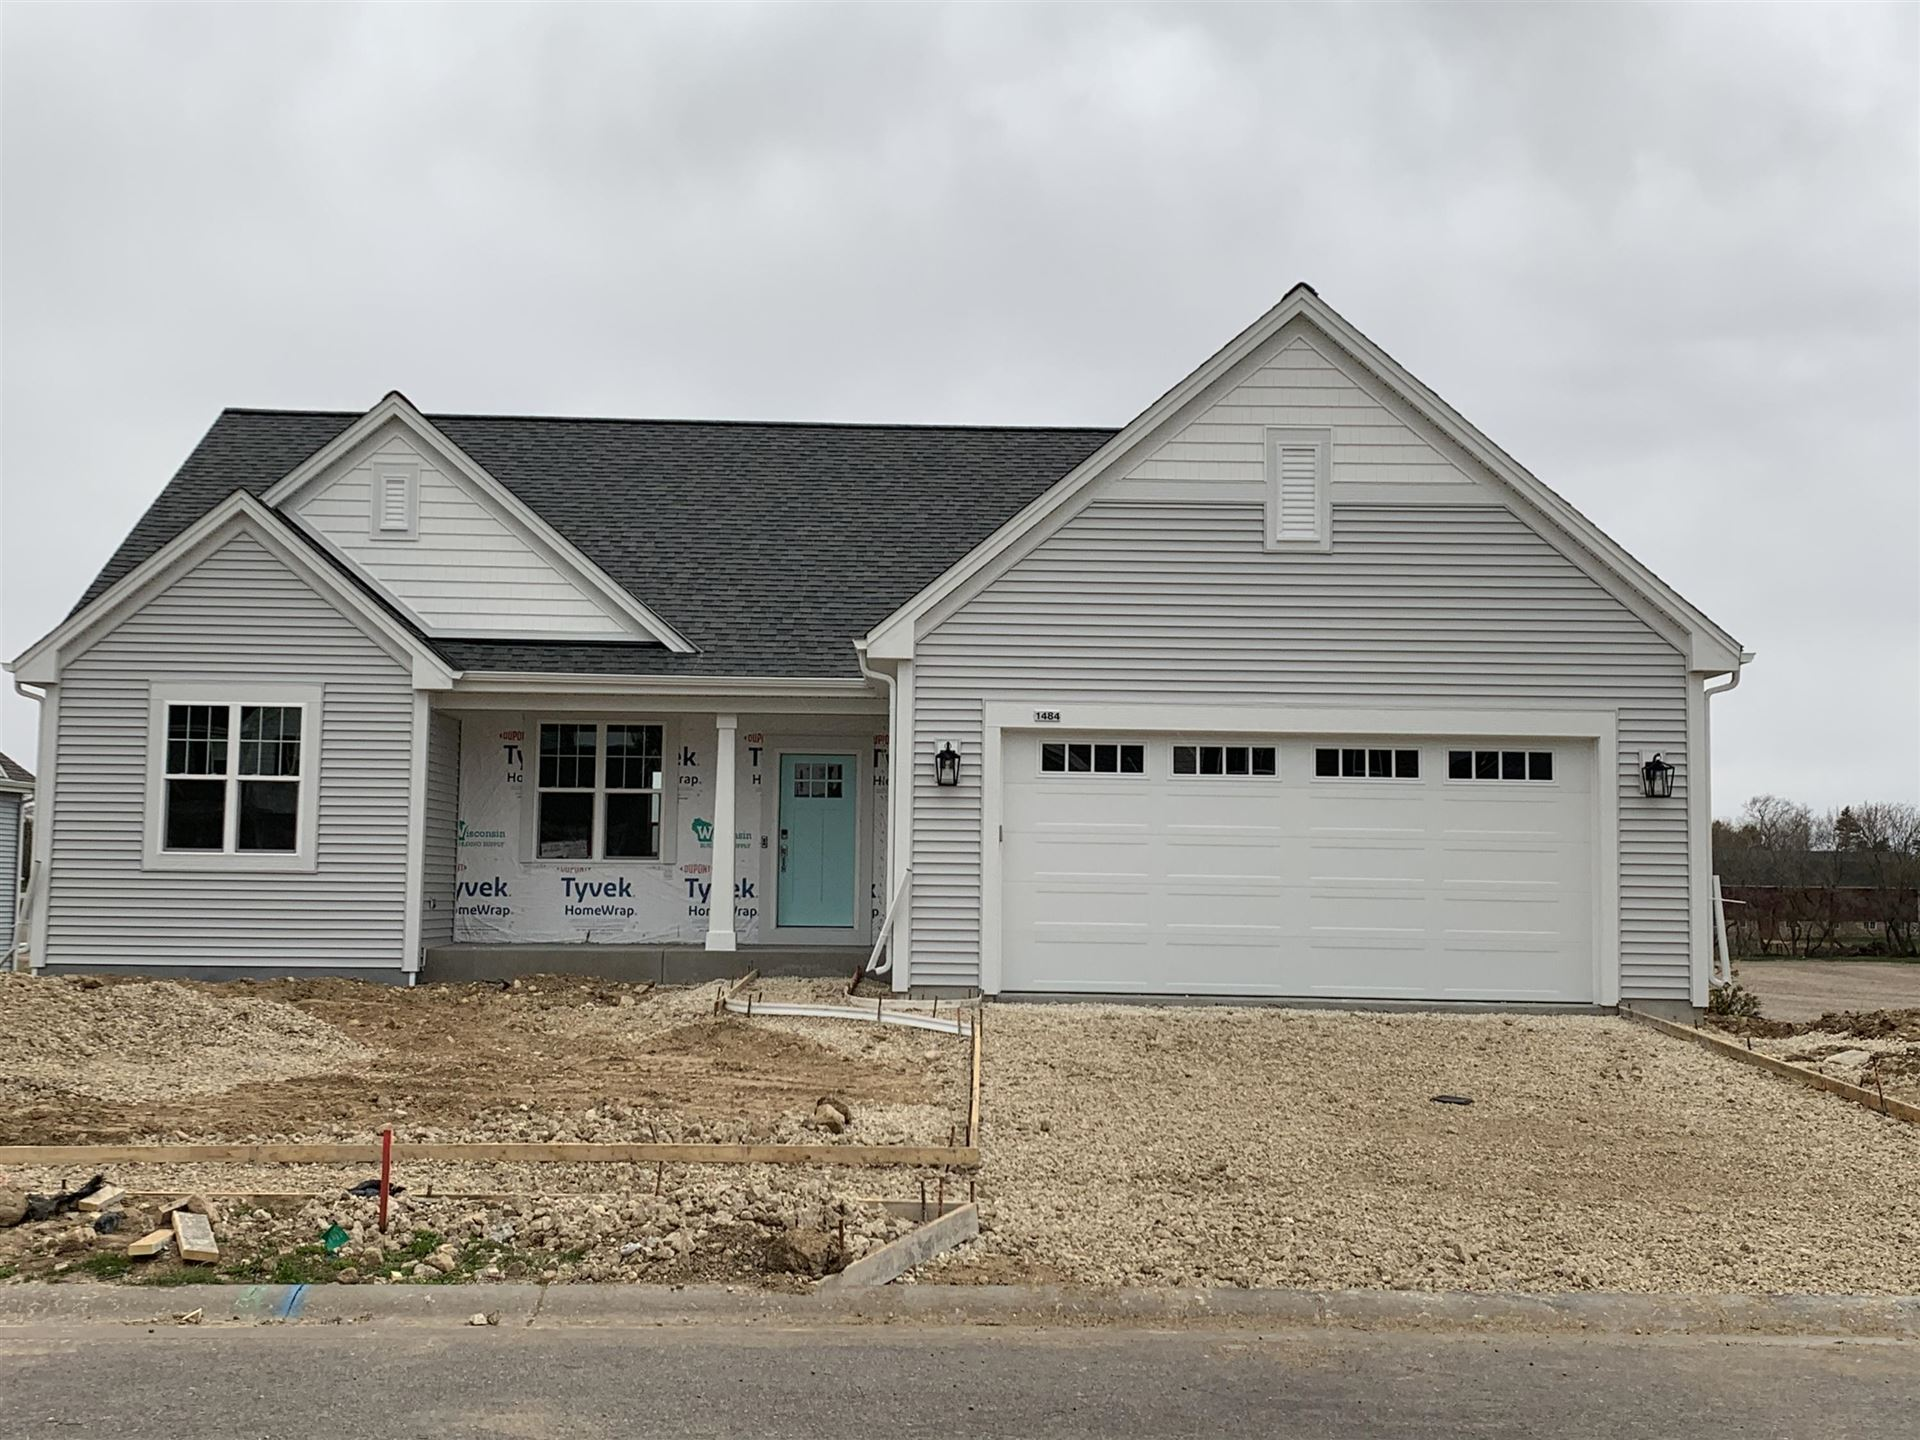 1484 Walnut Ct, Hartford, WI 53027 - #: 1686693